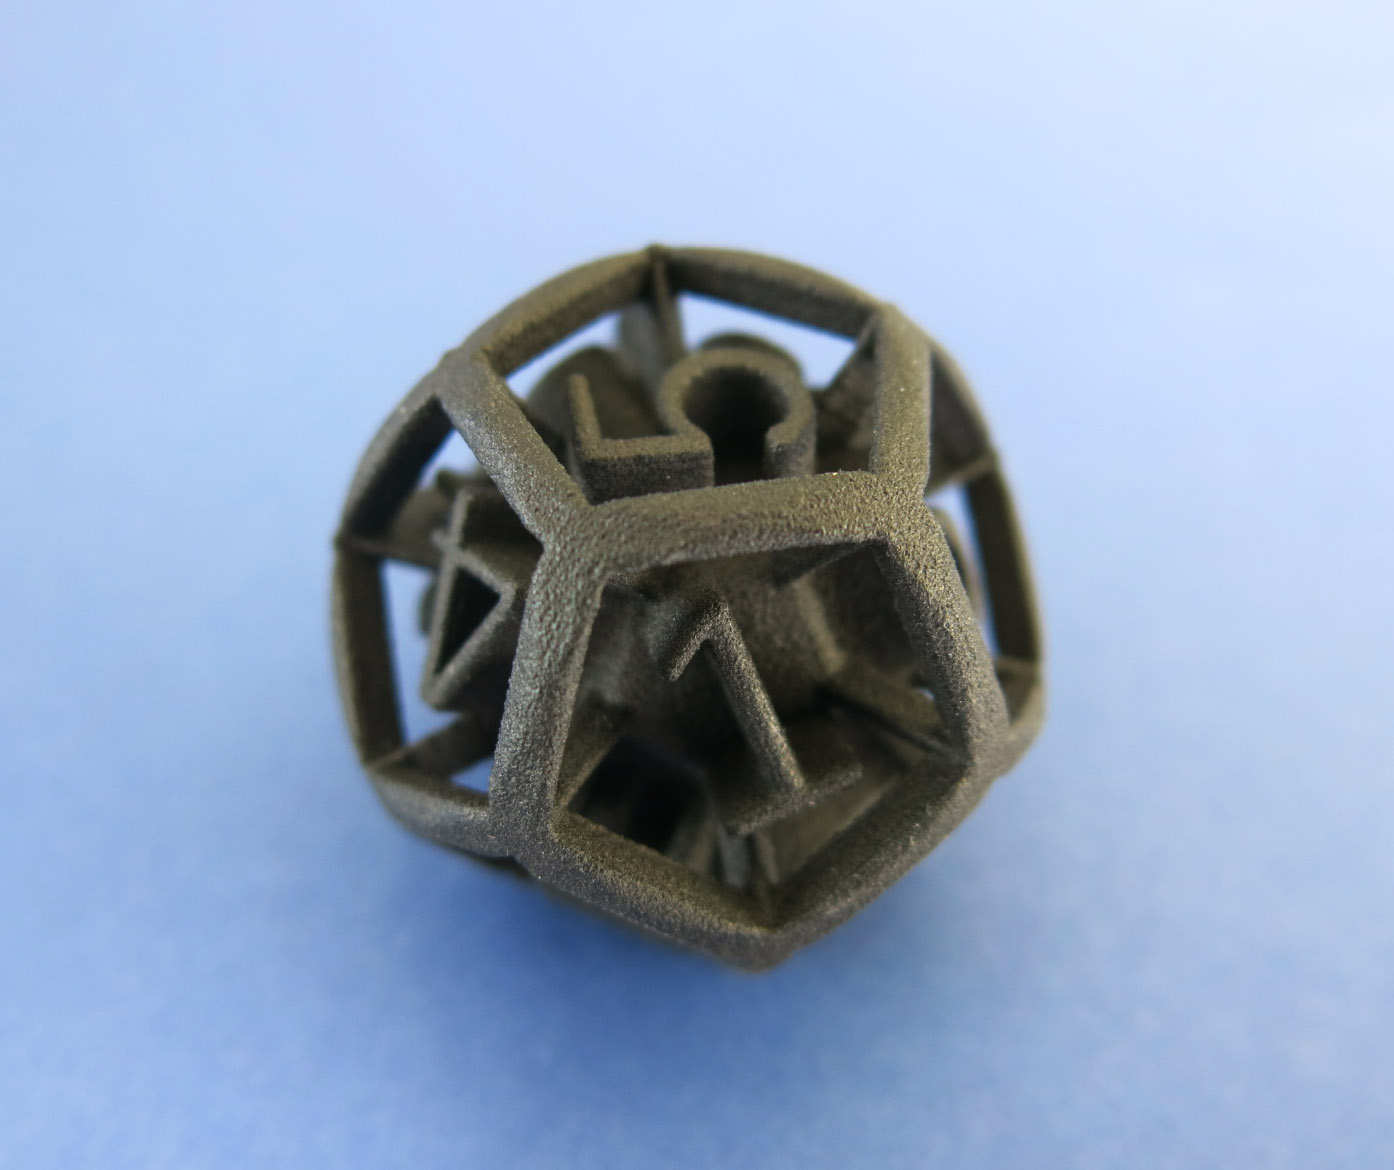 An object 3D printed in CarbonMide. Photo via Sculpteo.